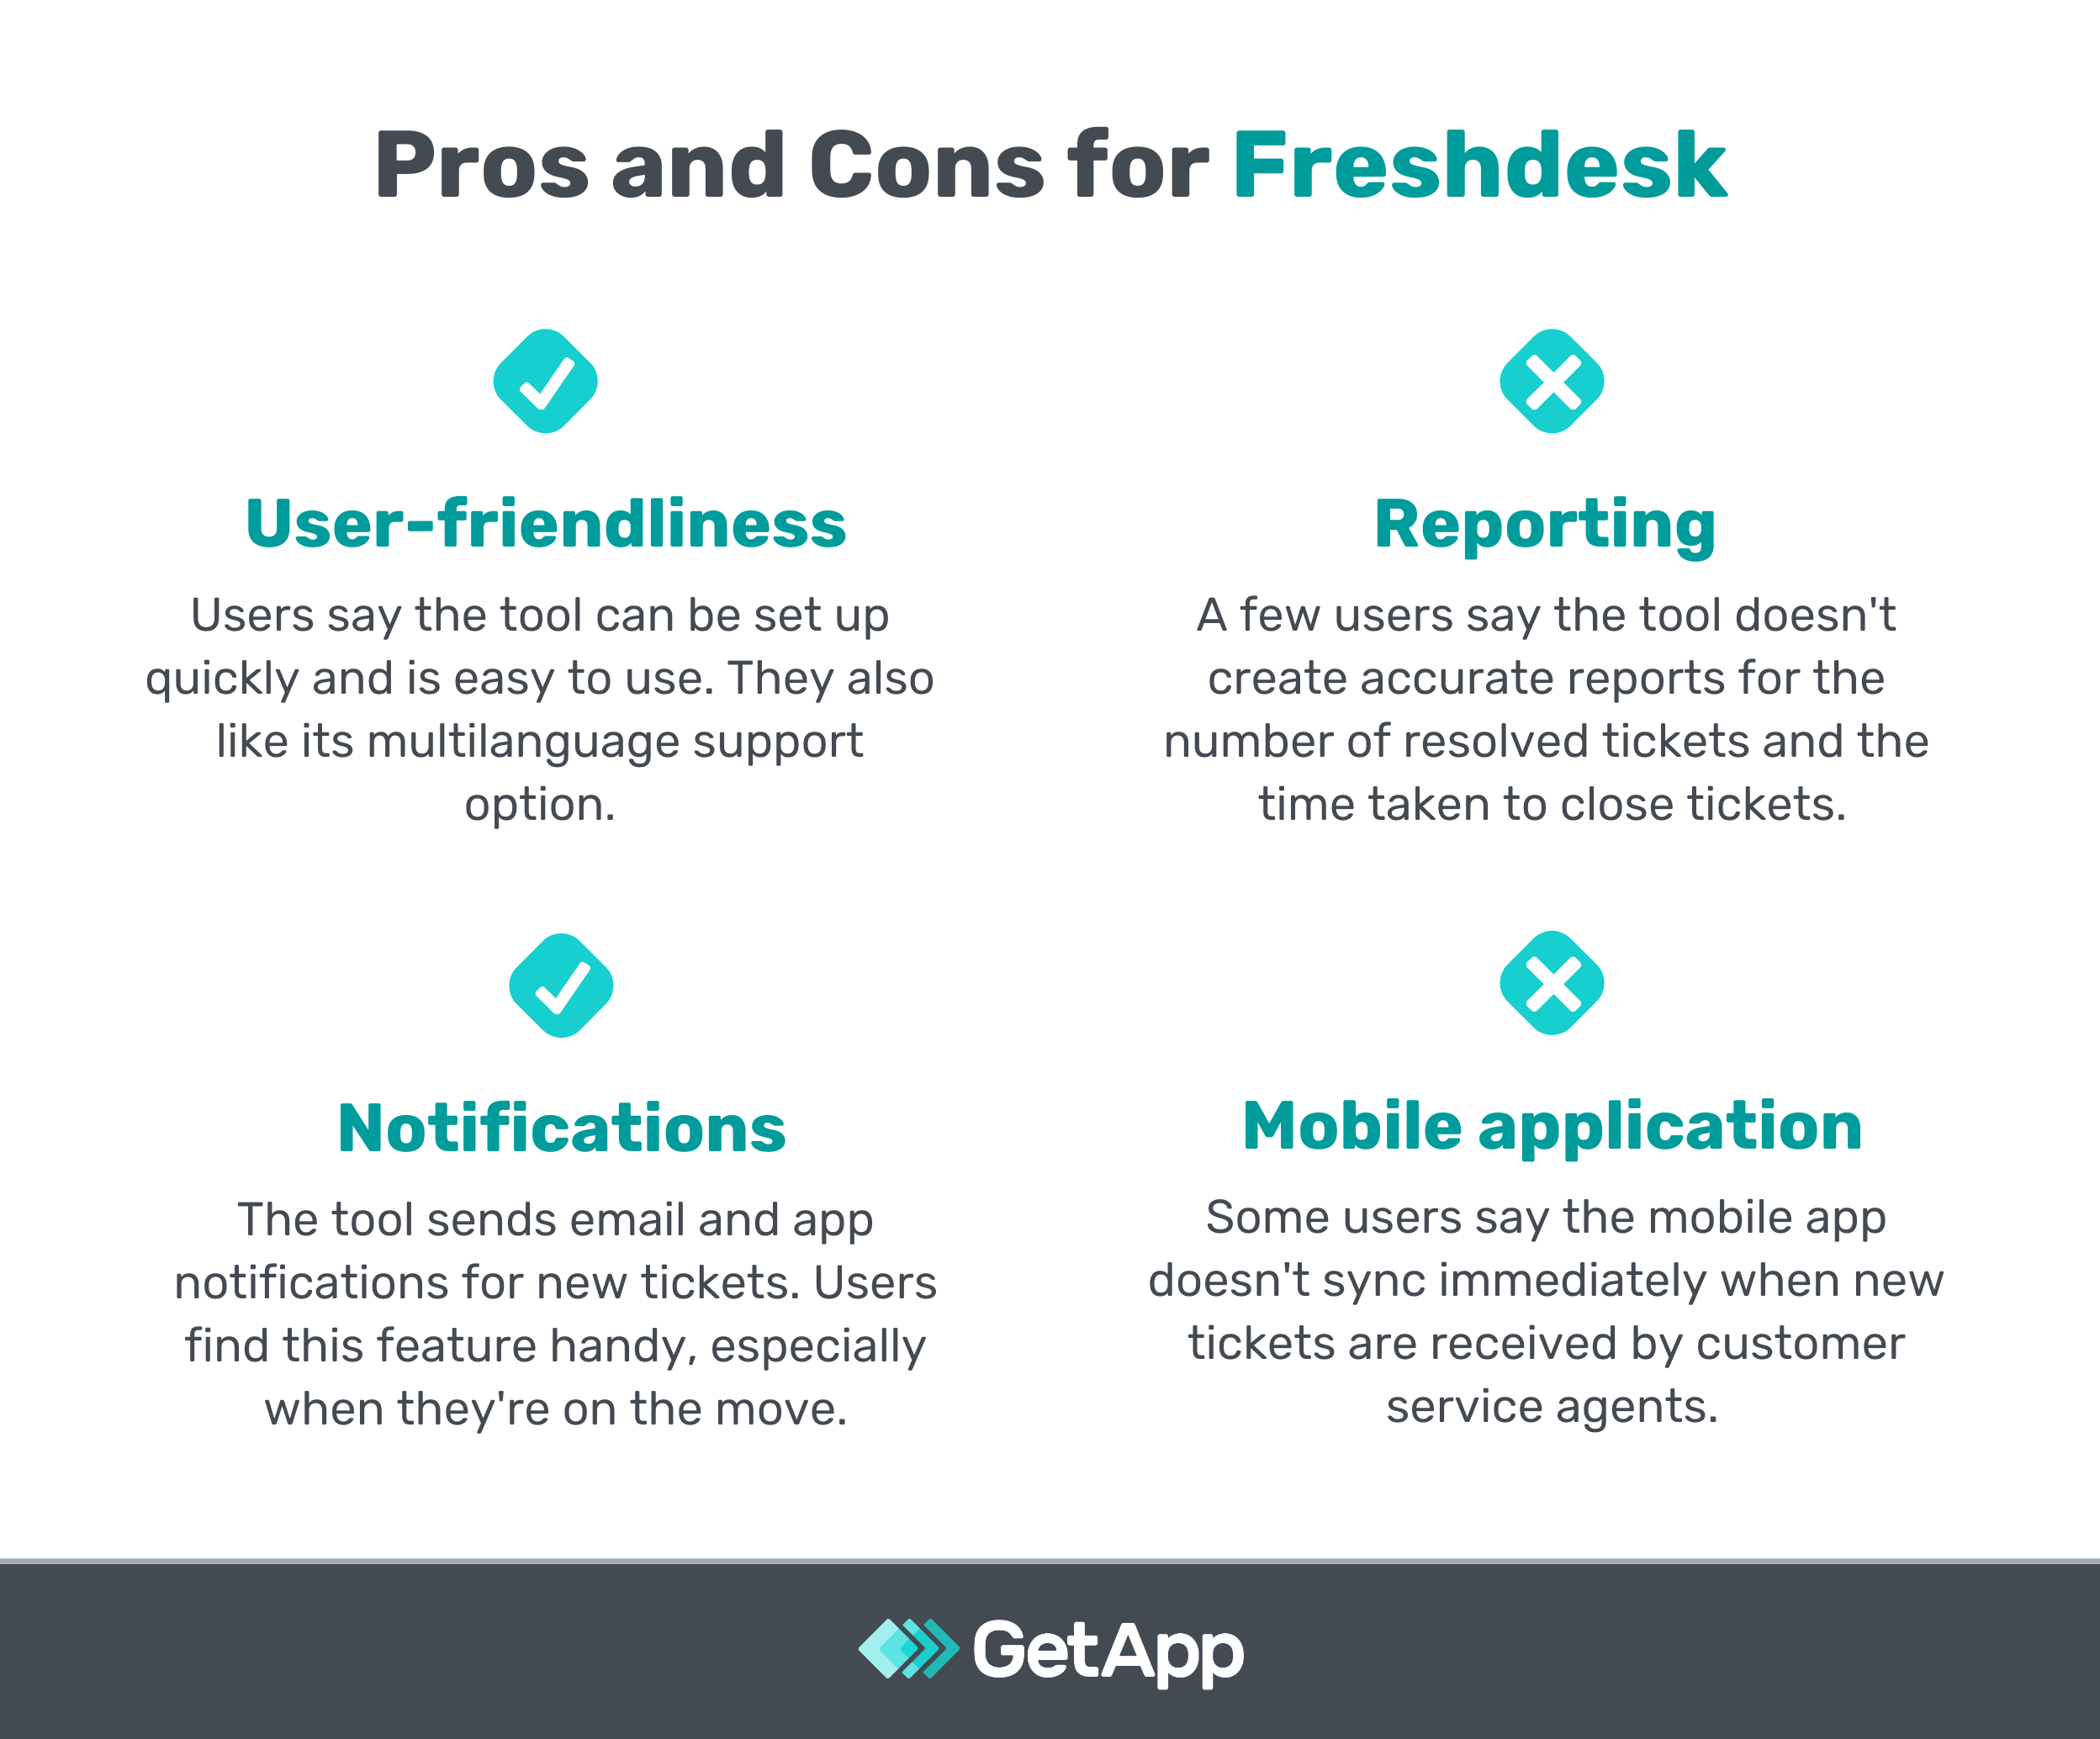 Pros and cons for Freshdesk